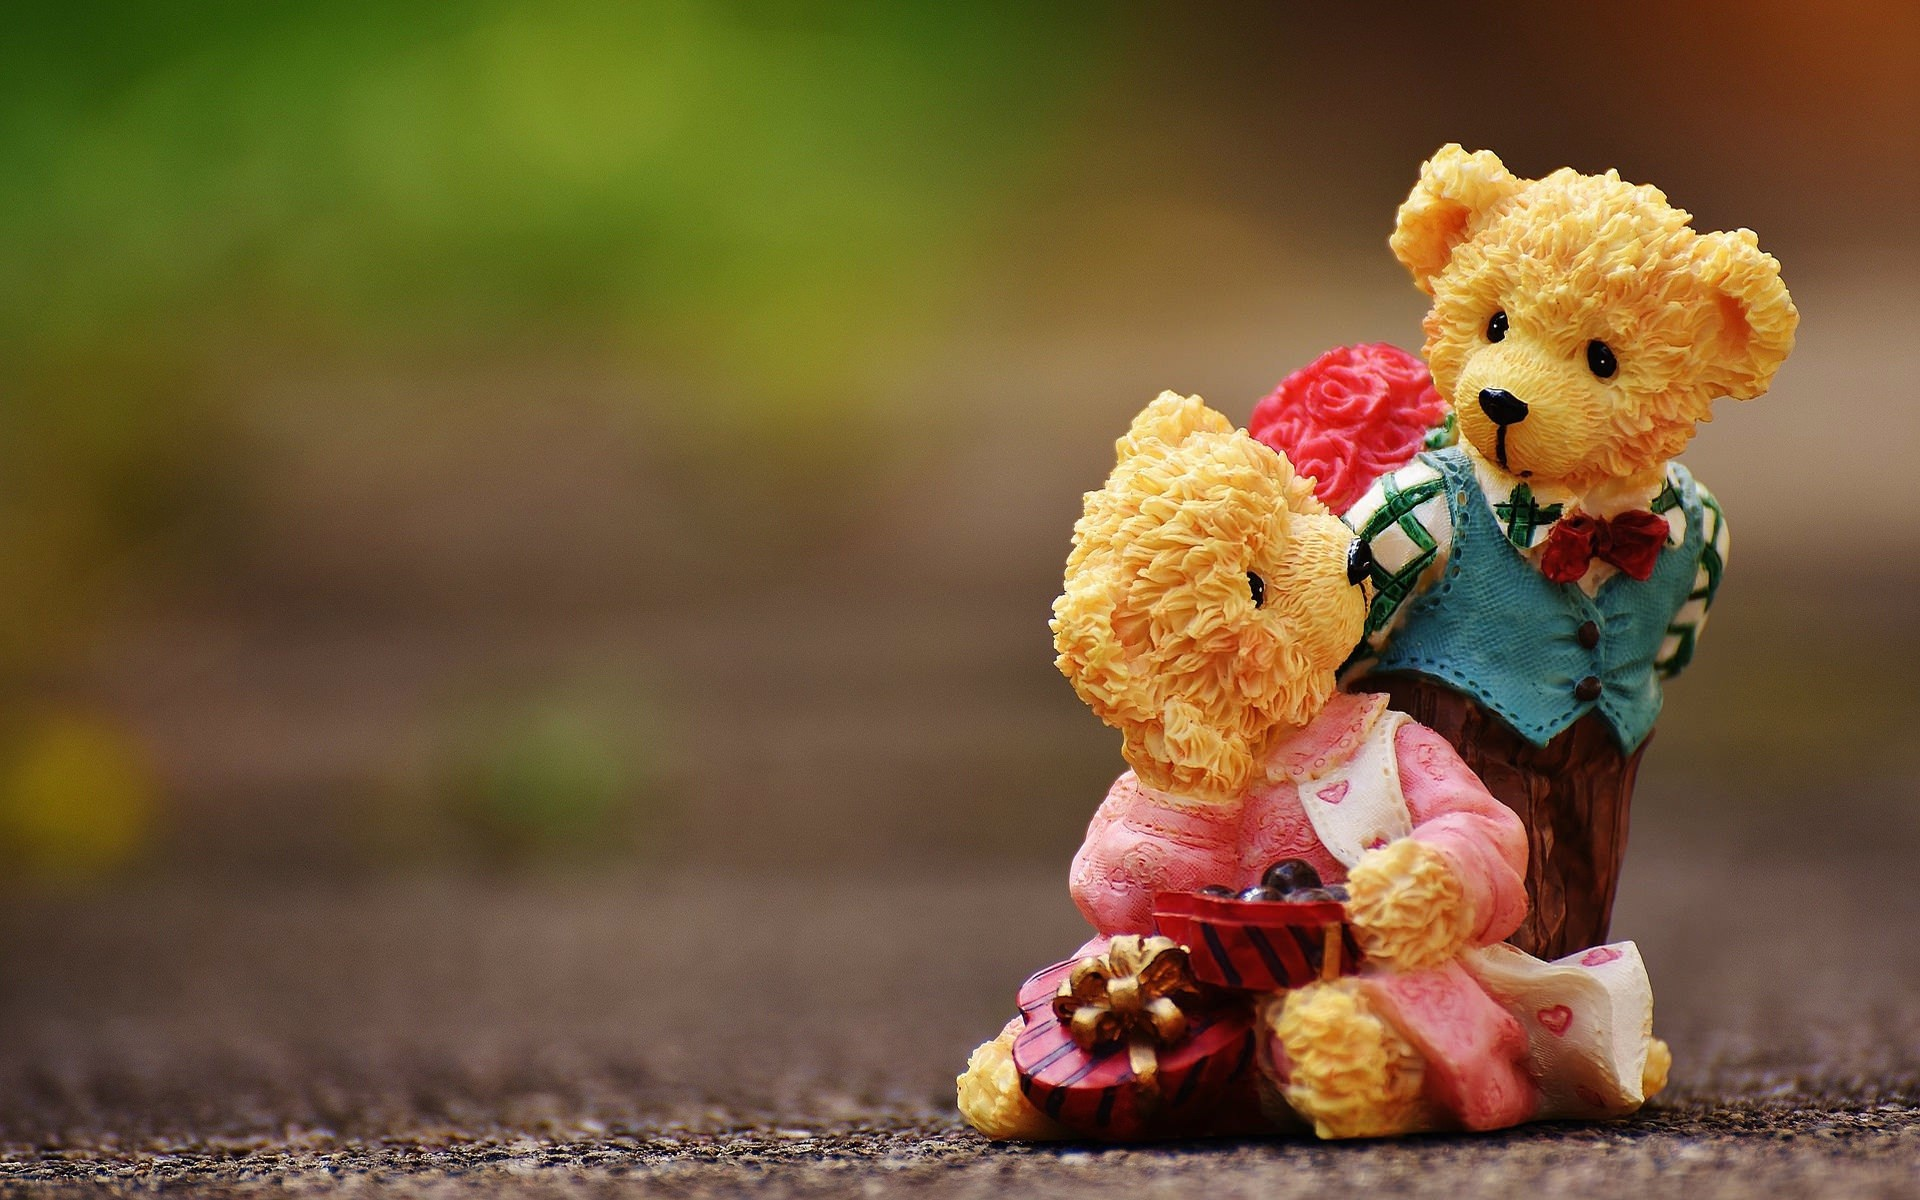 teddy-bears-on-the-road-street-wallpapers